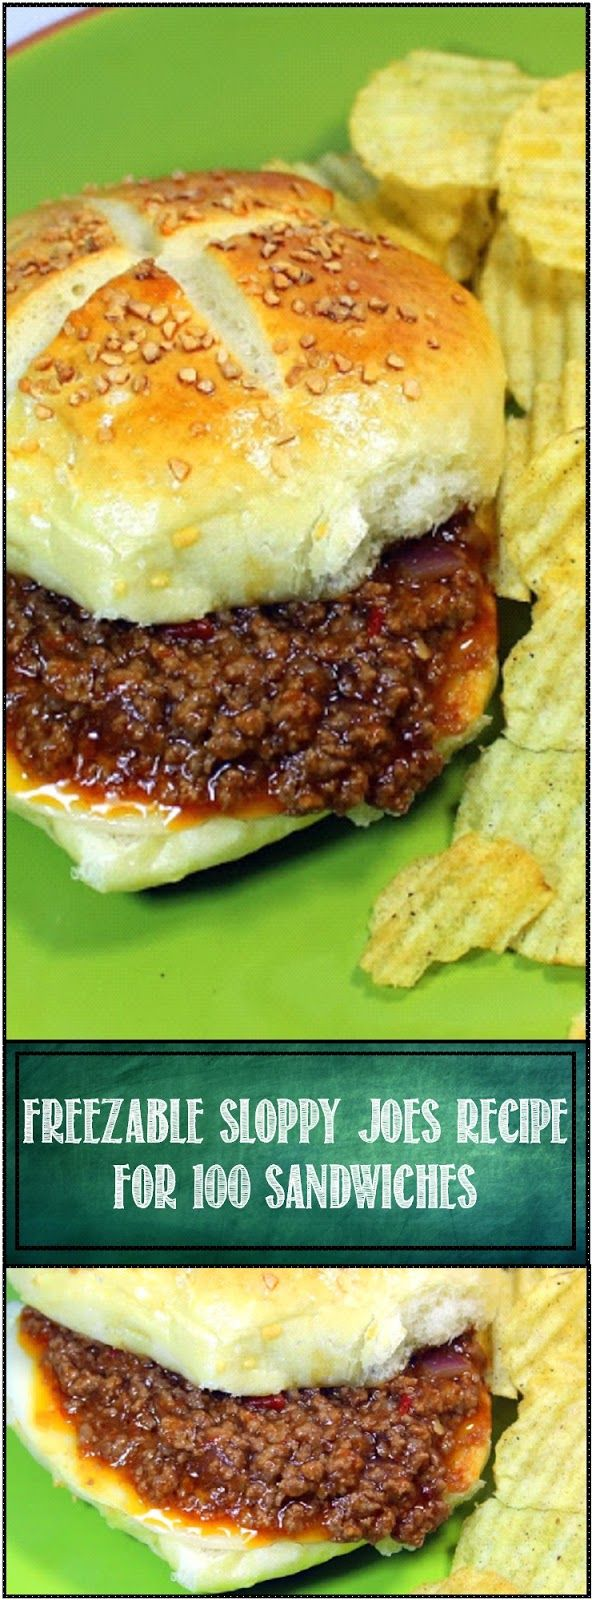 Freezable Sloppy Joe's Recipe For 100. This recipe comes in VERY handy when needed to feed a large group. Freezes easily and can stay warm for hours in the crockpot. Perfect for a big family event, Church potluck, Pre-Thanksgiving or Christmas.  Freezable Sloppy Joe's - YUM